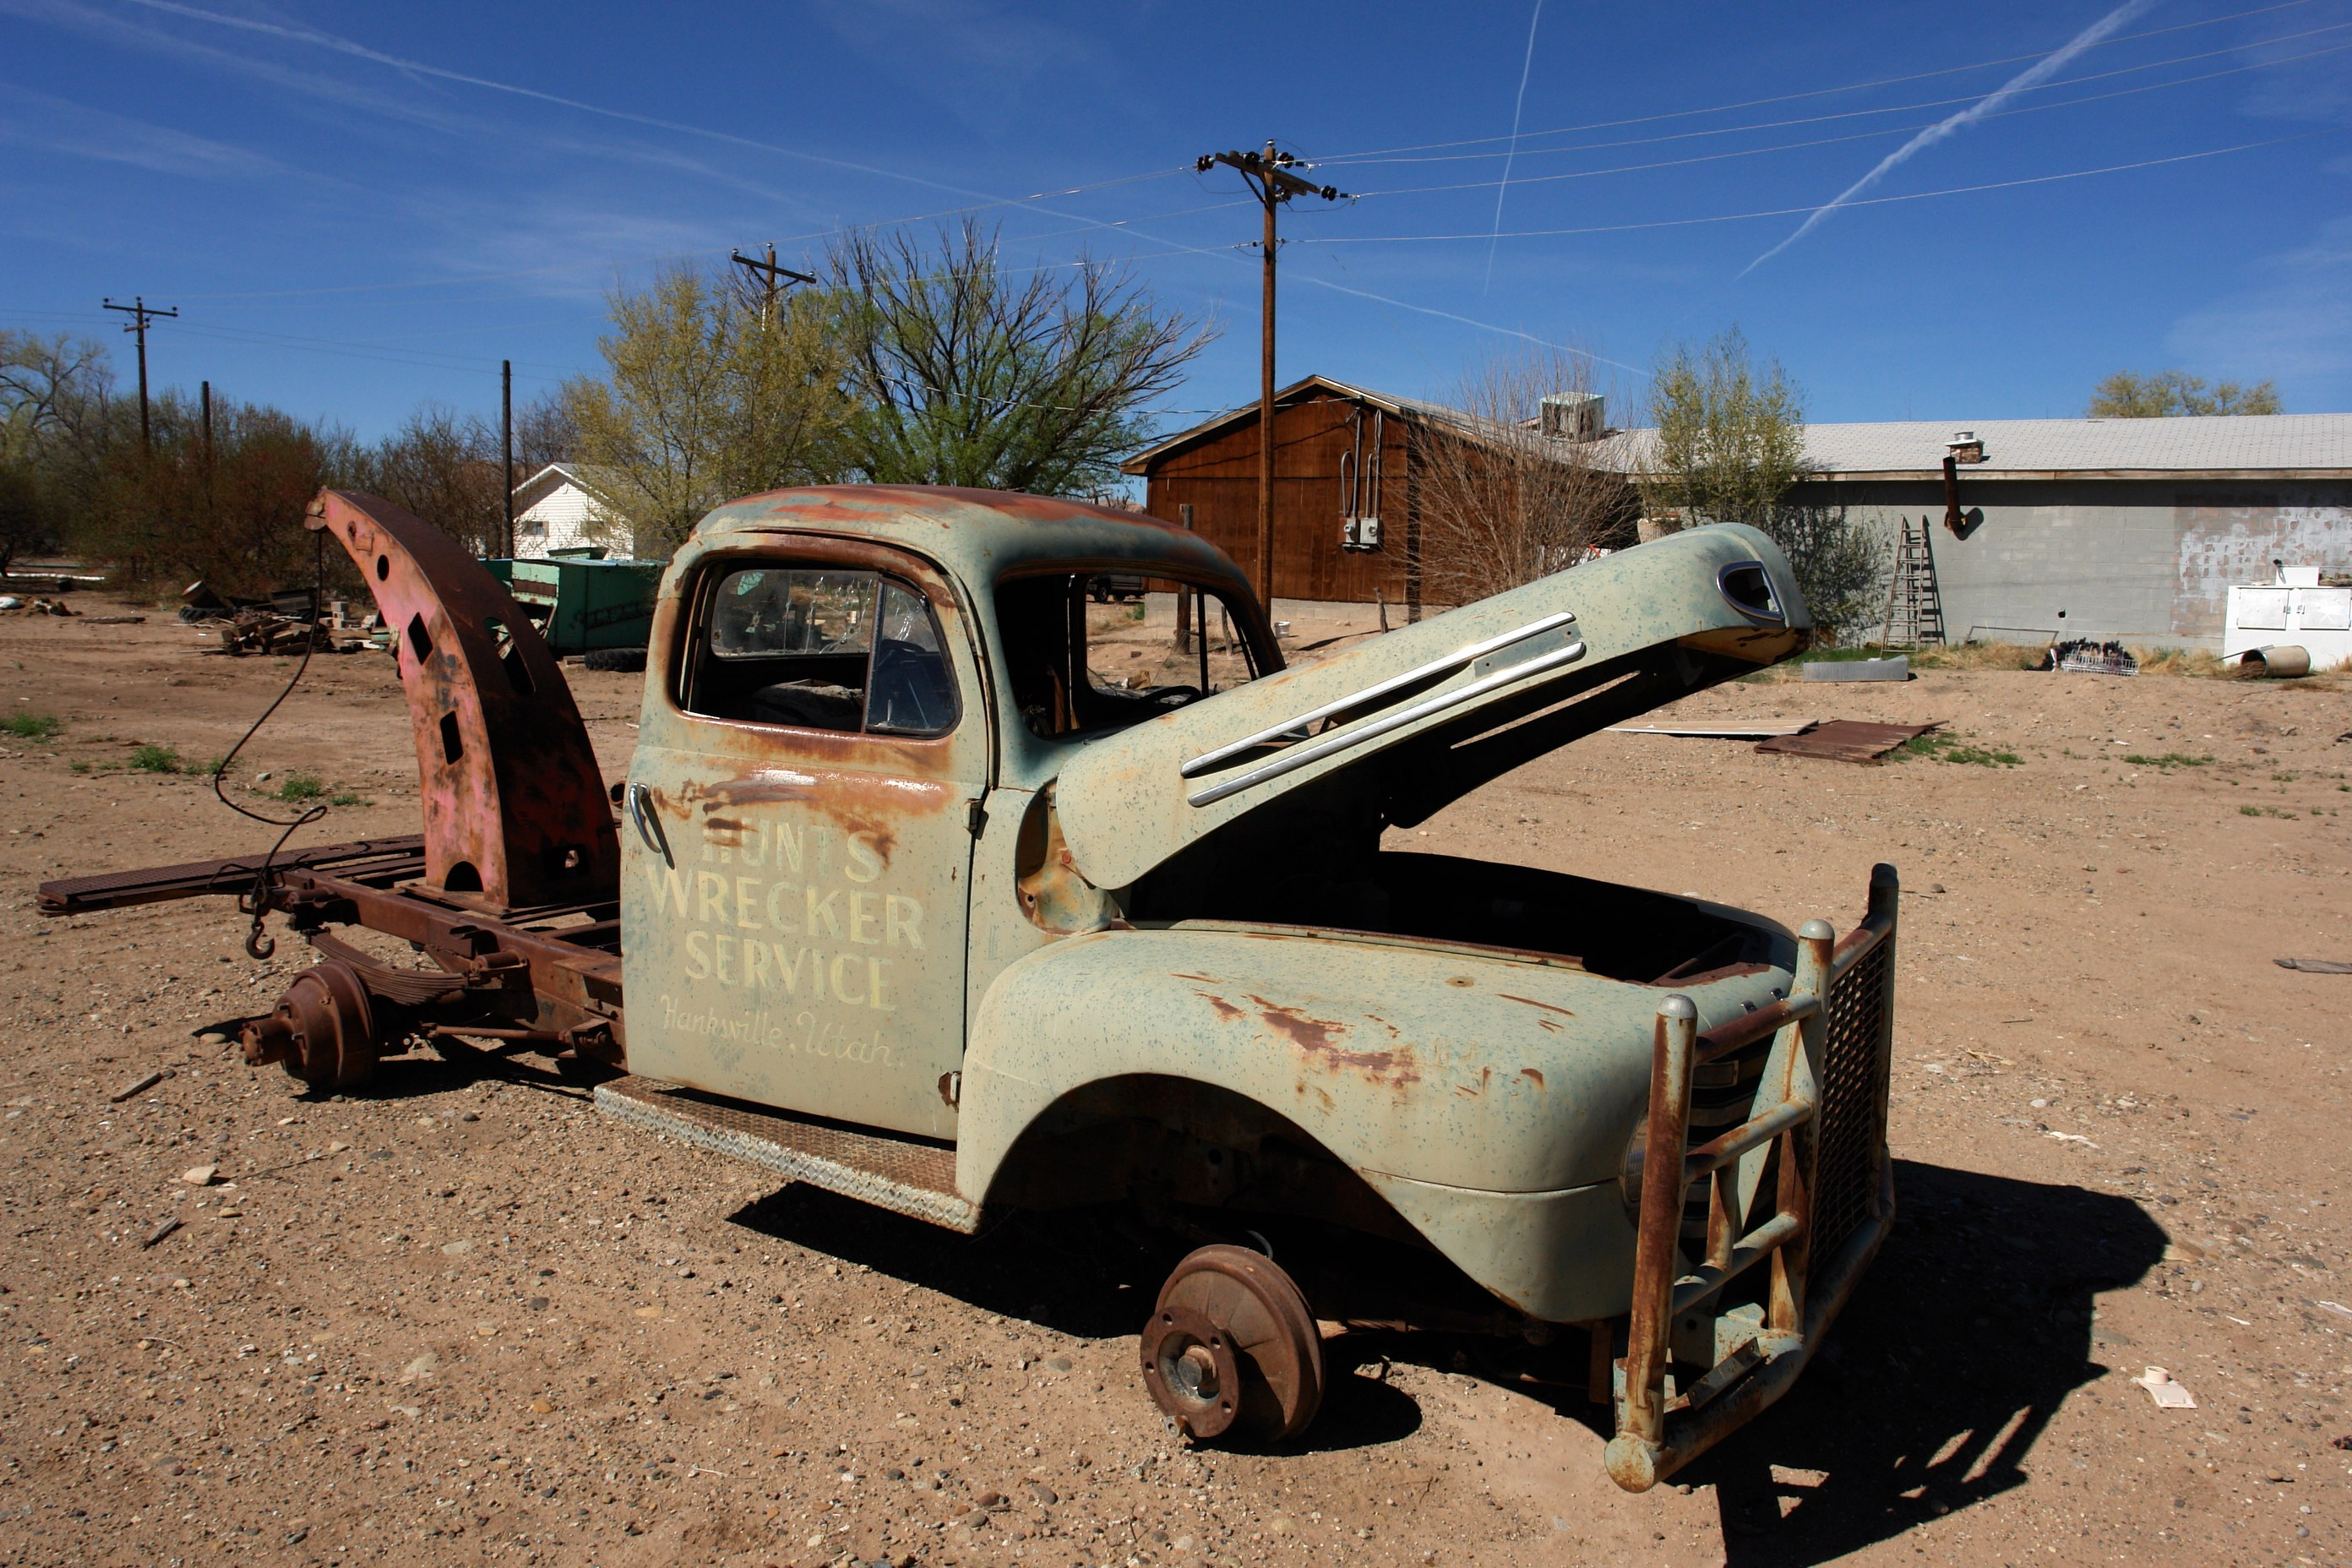 File:Abandoned Old Rusty Car (3467150757).jpg - Wikimedia Commons